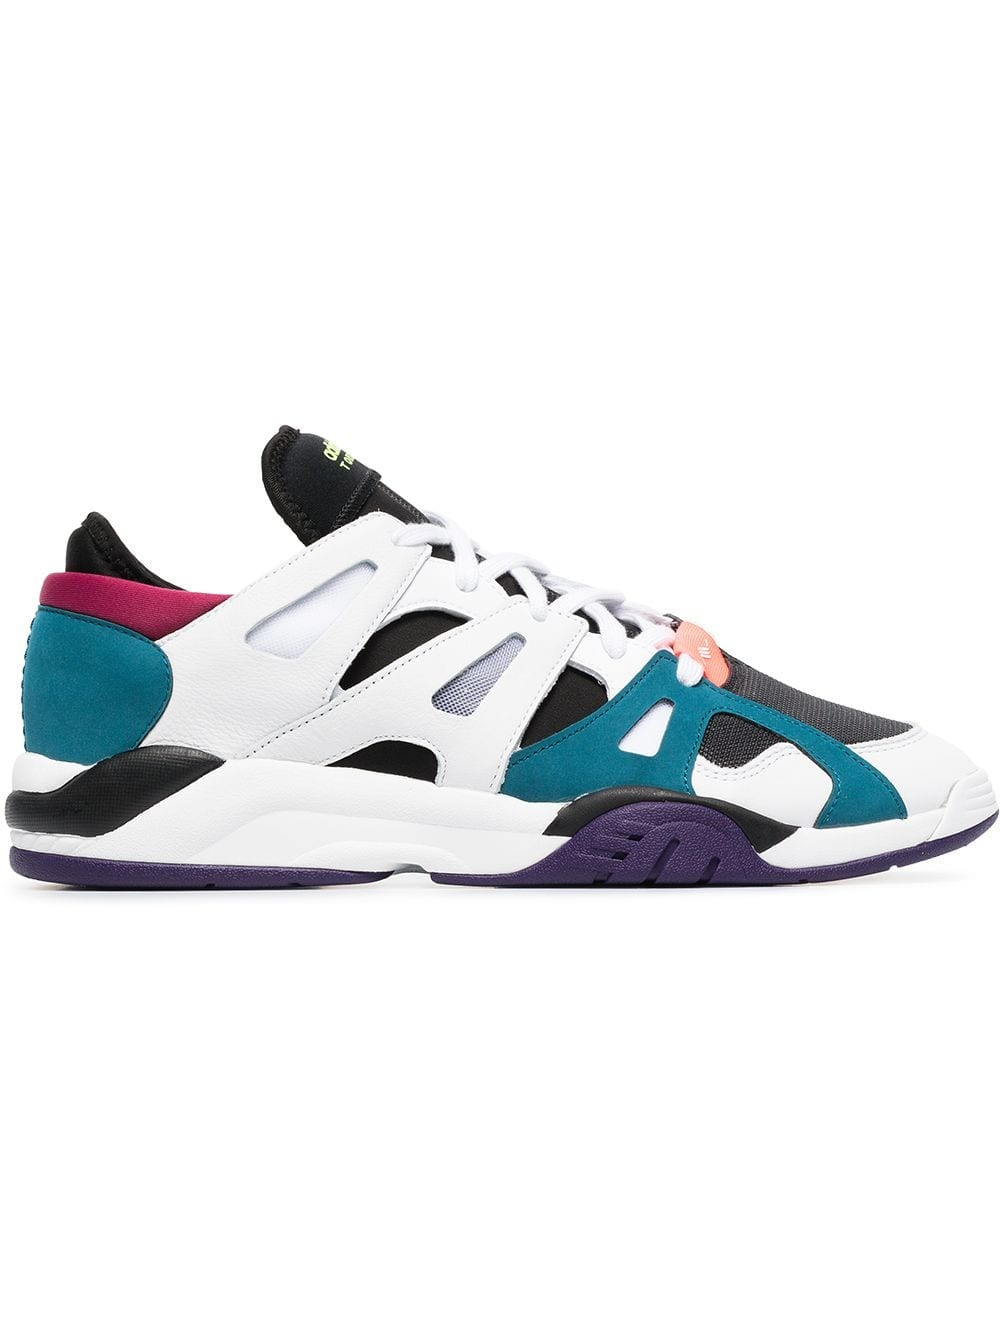 Adidas Originals Dimension Lo Blancas/Teal/Negras F34418